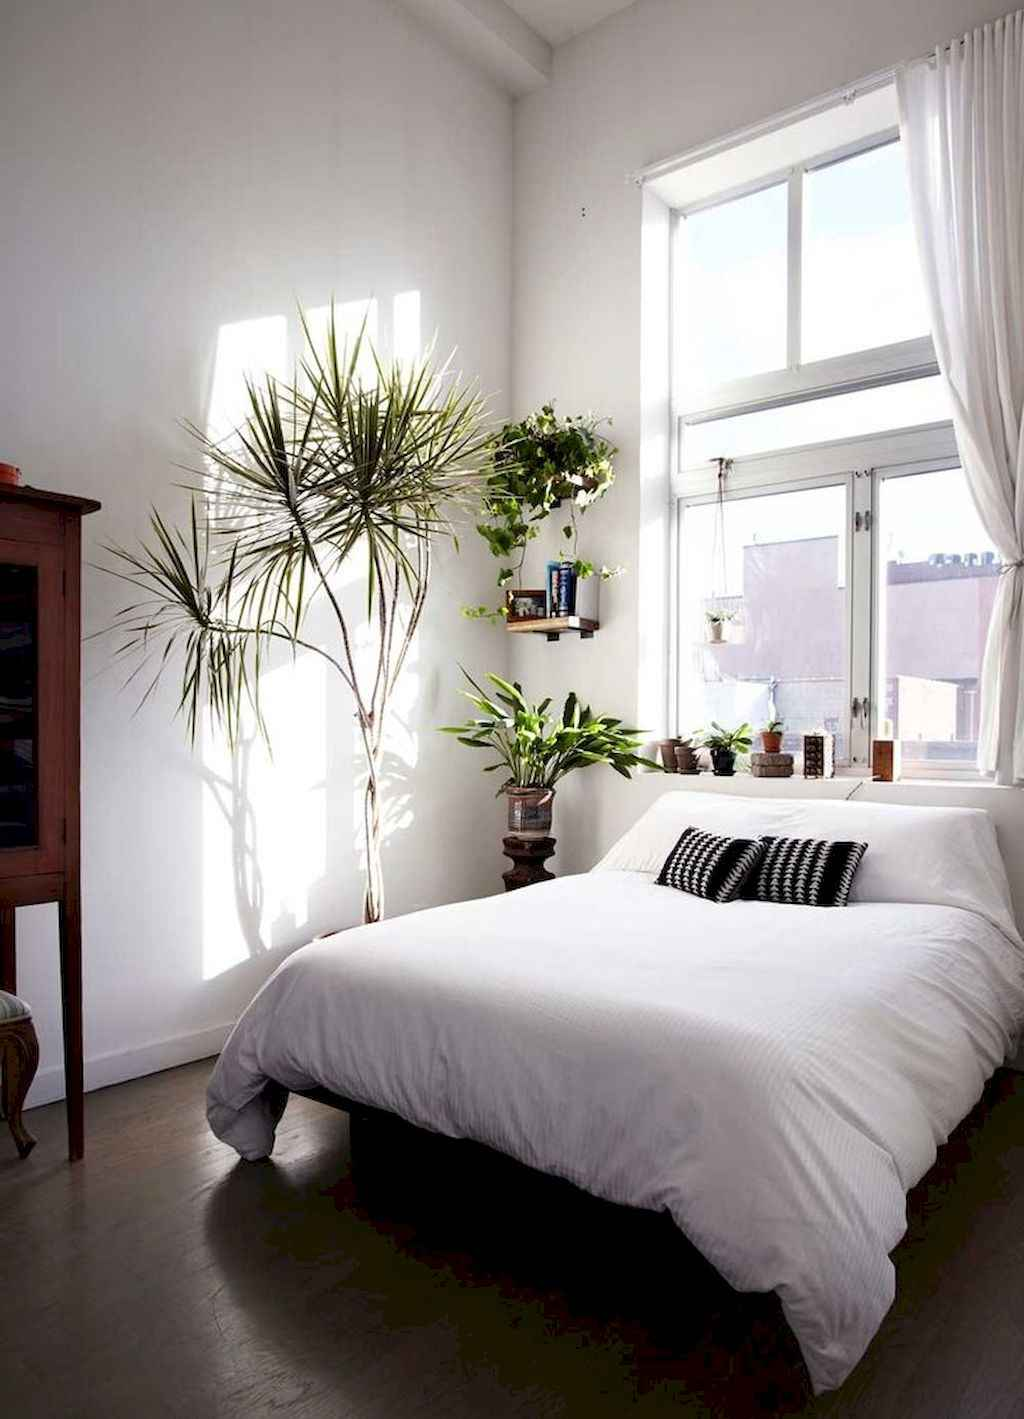 Couples first apartment decorating ideas (46)